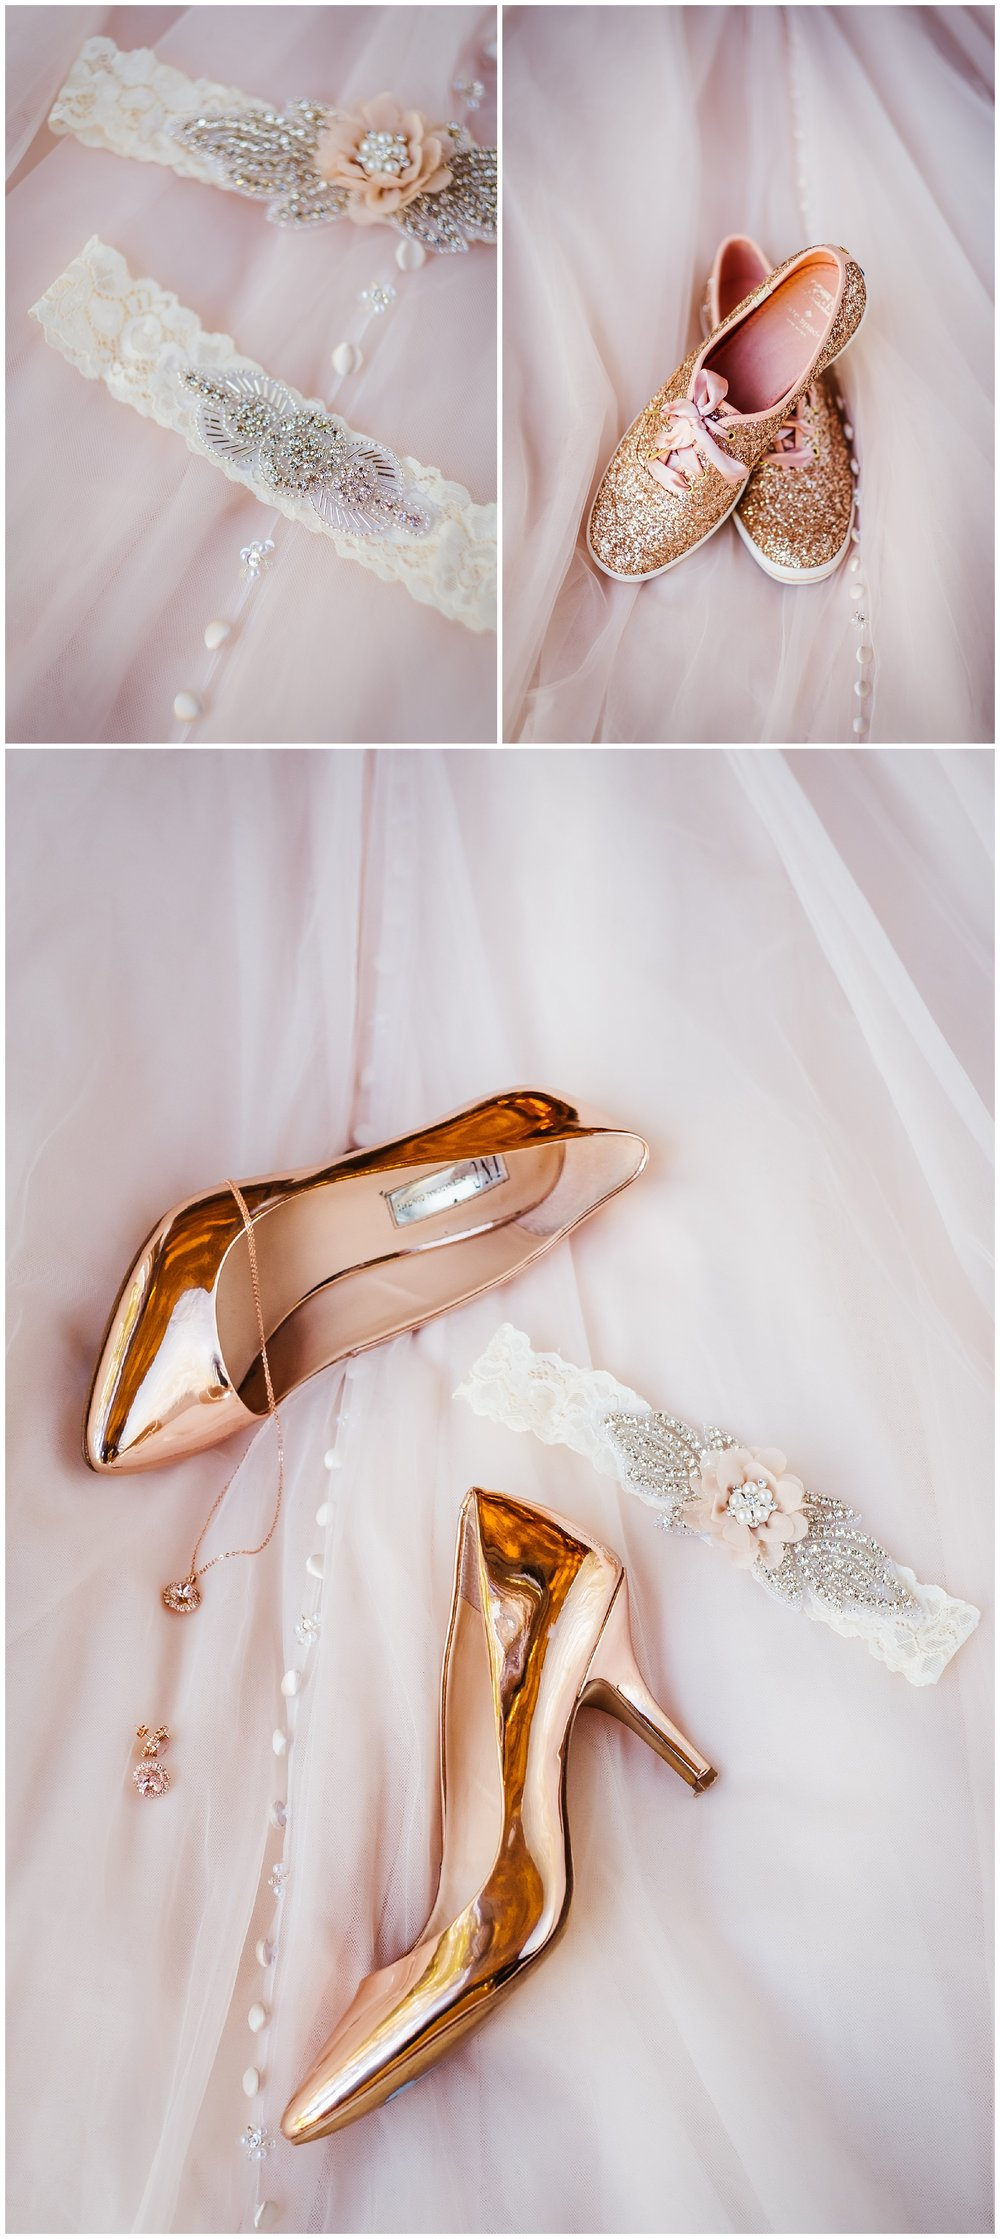 tampa-wedding-photographer-kapok-special-events-center-hayley-paige-gress-blush-gold-disney_0005.jpg